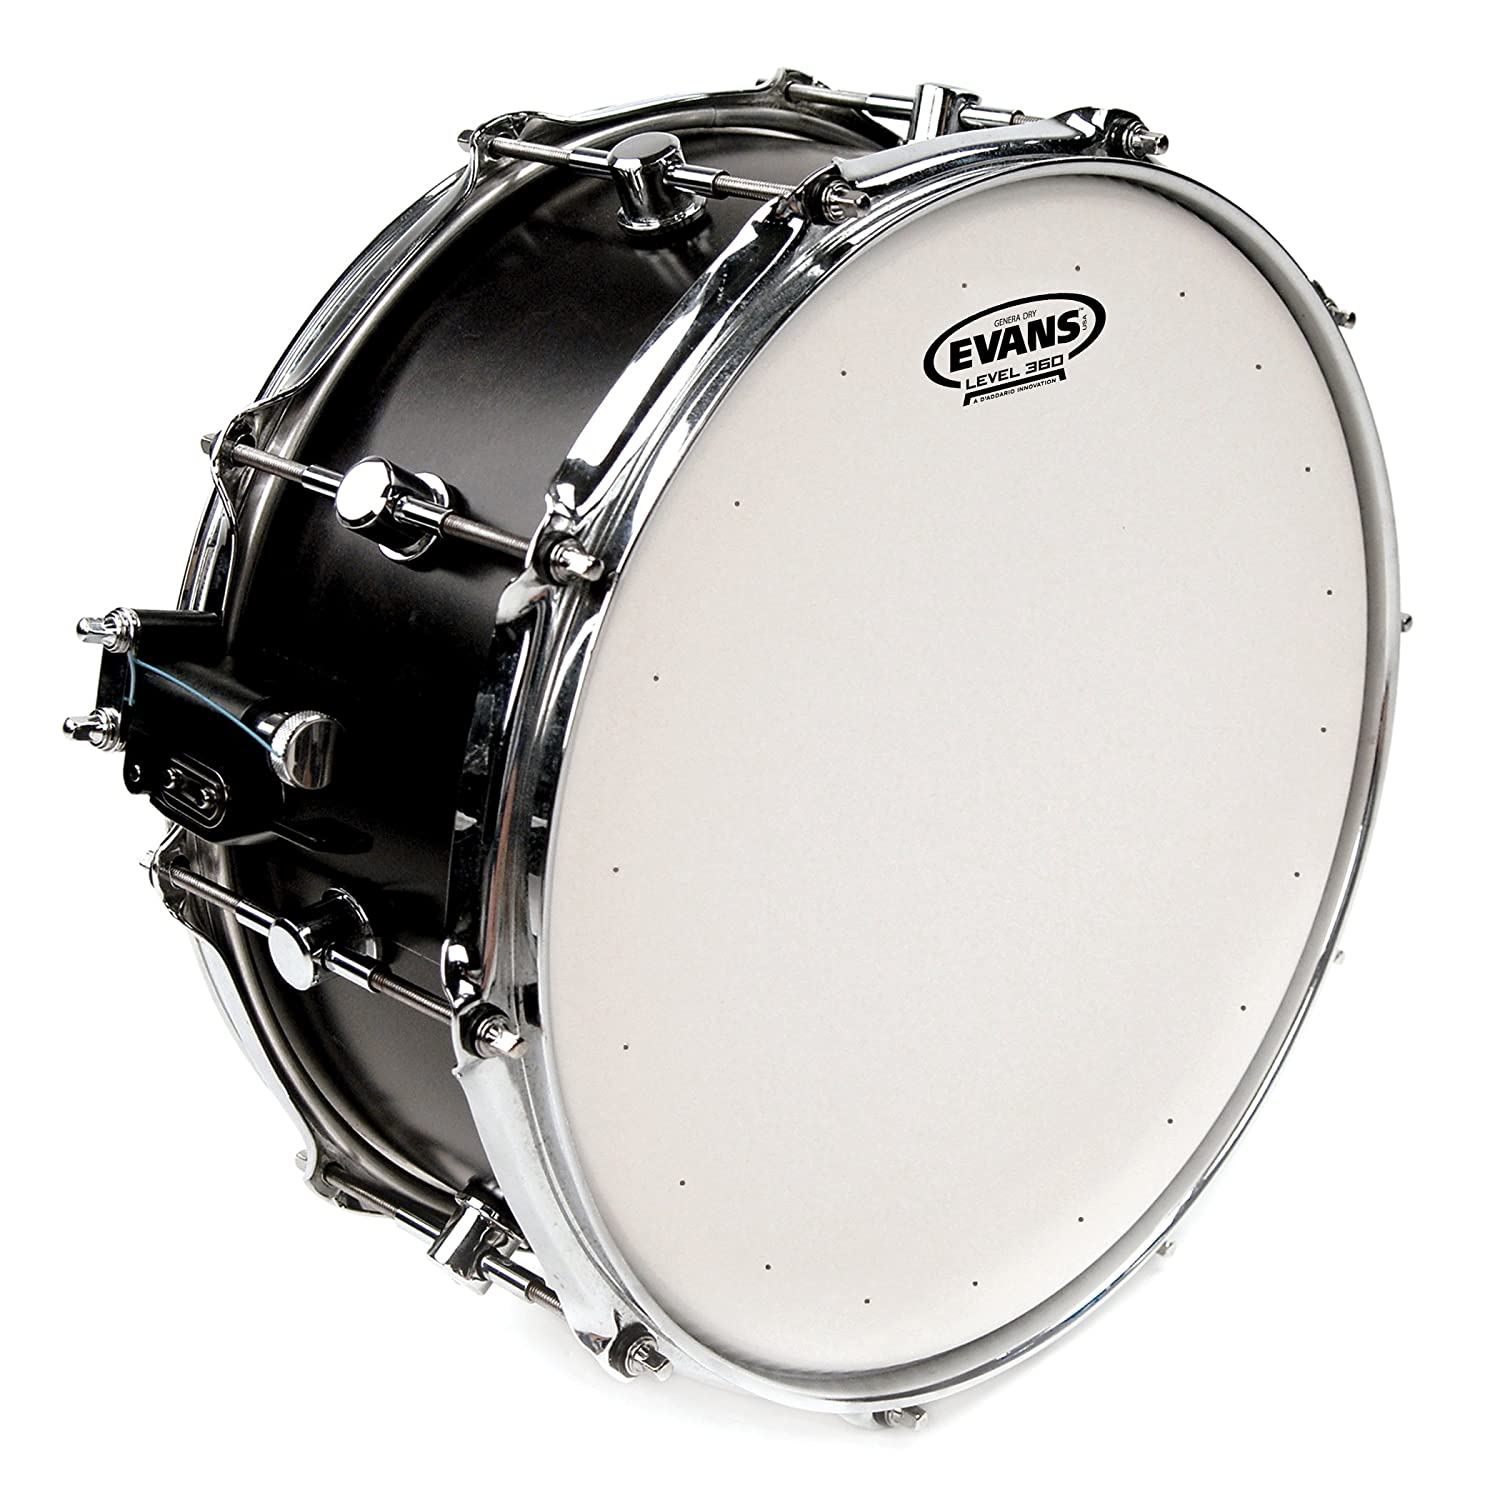 Evans 14-Inch G2 Clear Drum Head TT14G2 2-Ply Tom Batter Snare Timbale Top